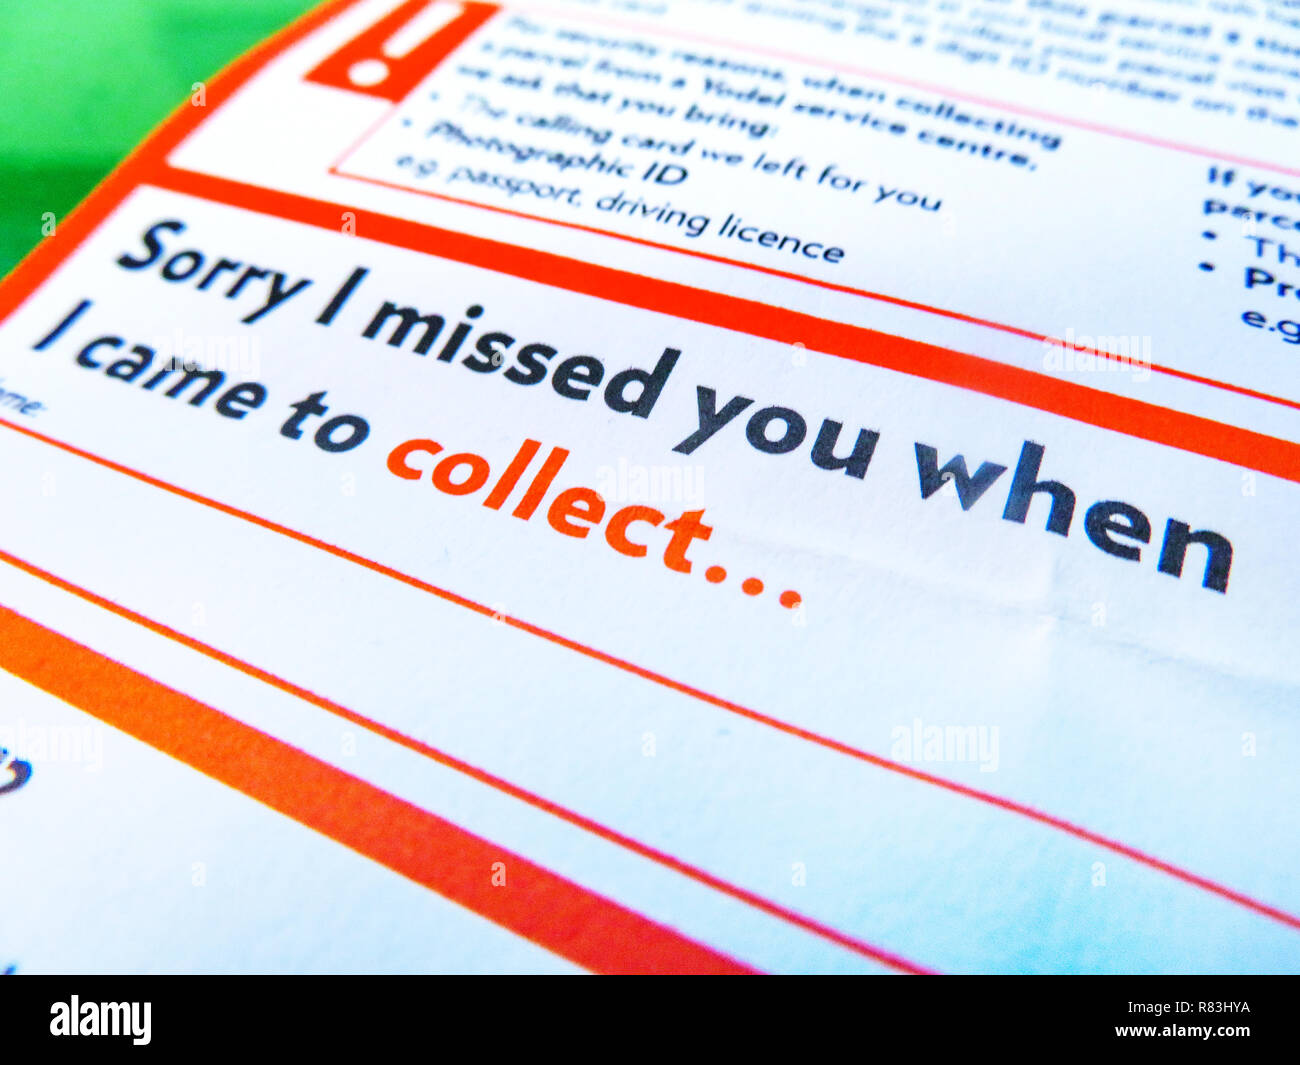 Yodel None Delivery Note. Sorry I missed you when I came to deliver - Stock Image